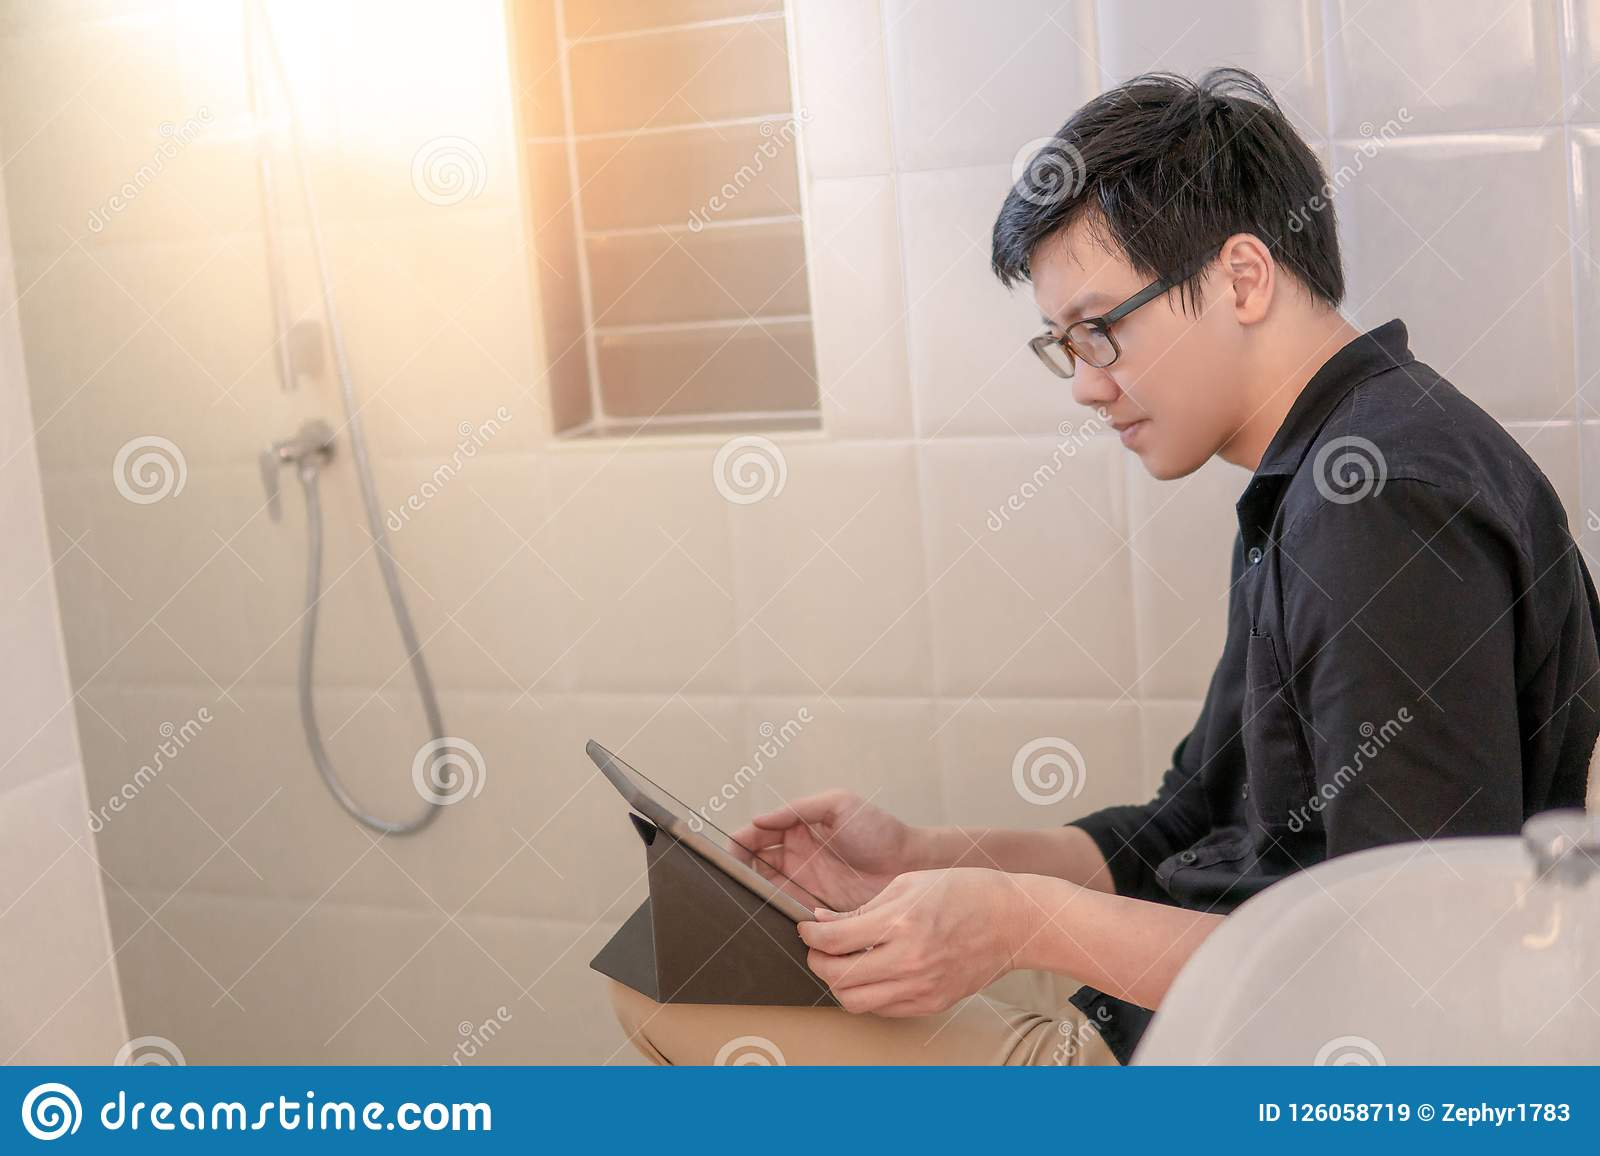 Asian business man using tablet in bathroom